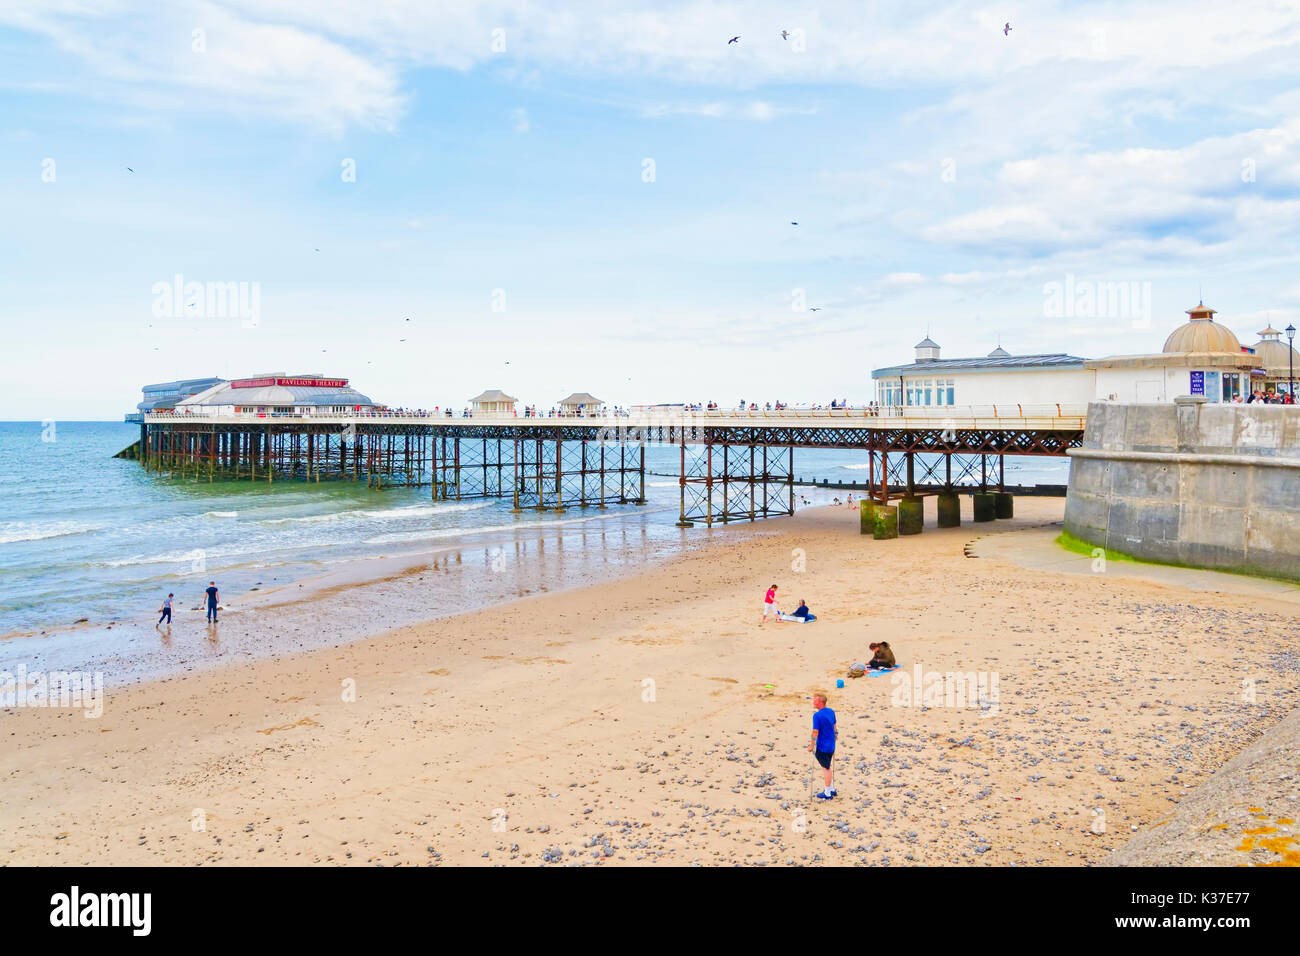 At low tide children play on the beach at the side of Cromer pier - Stock Image